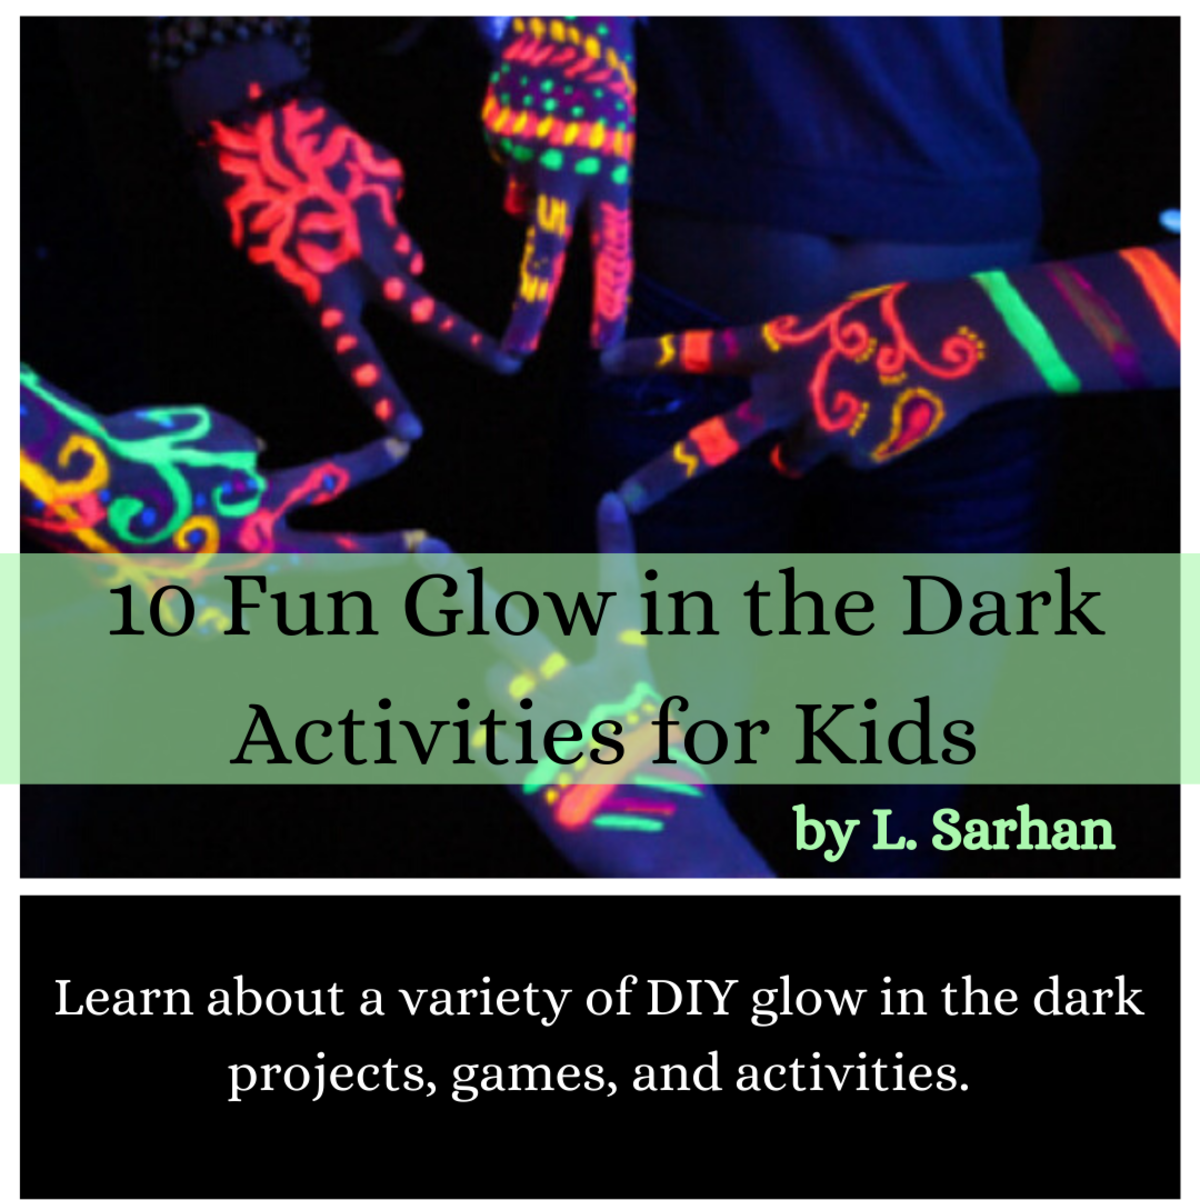 10 Fun Glow in the Dark Activities for Kids